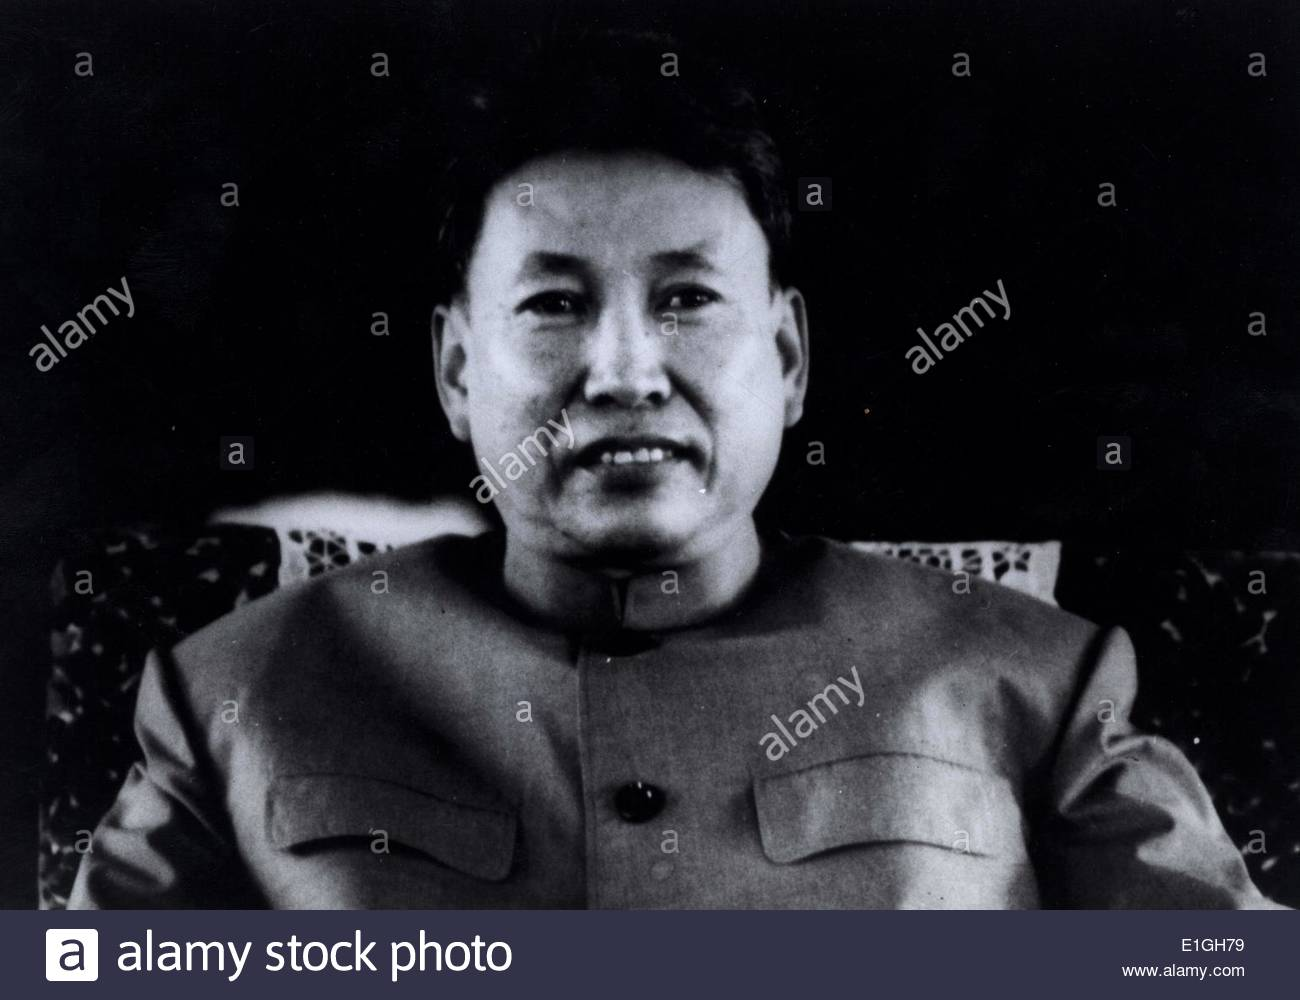 Pol Pot 1925 – 1998 born Saloth Sar he was a Cambodian communist revolutionary who led the Khmer Rouge from 1963 Stock Foto